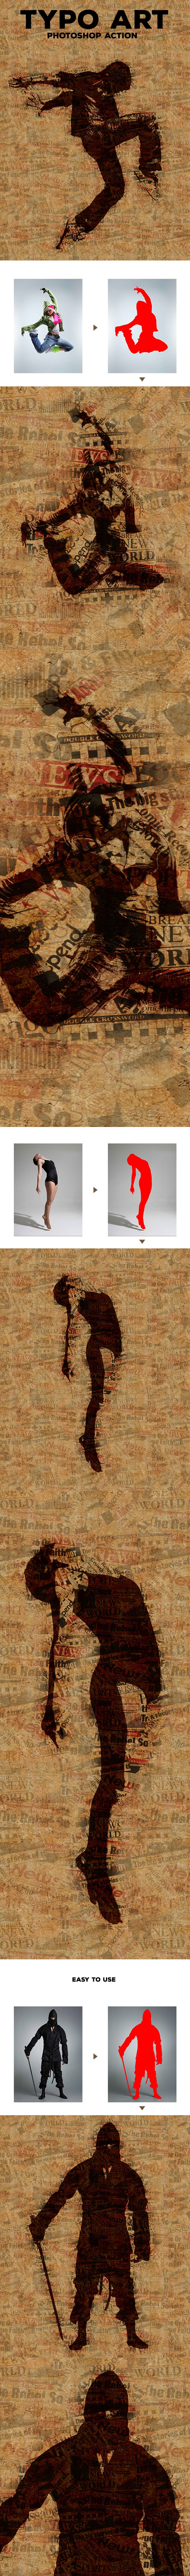 Typo Art - Photoshop Action - Photo Effects Actions